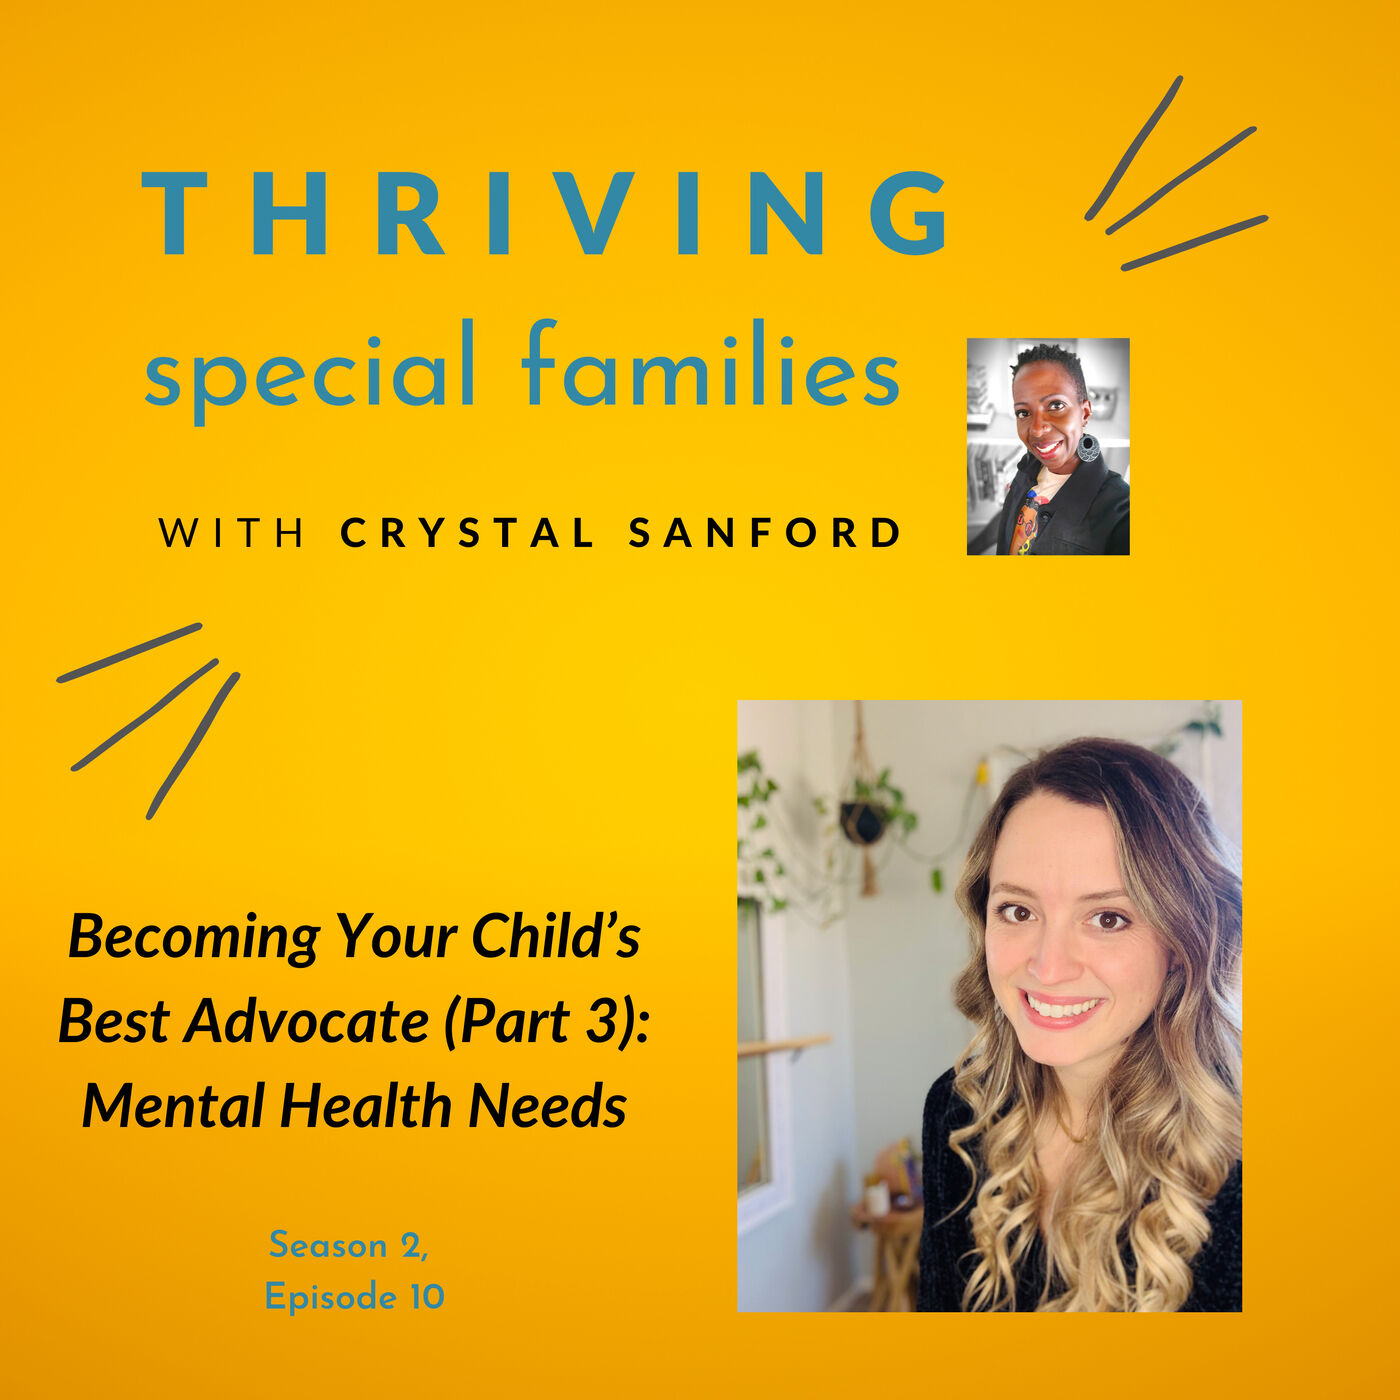 Becoming Yours Child's Best Advocate (Part 3): Mental Health Needs